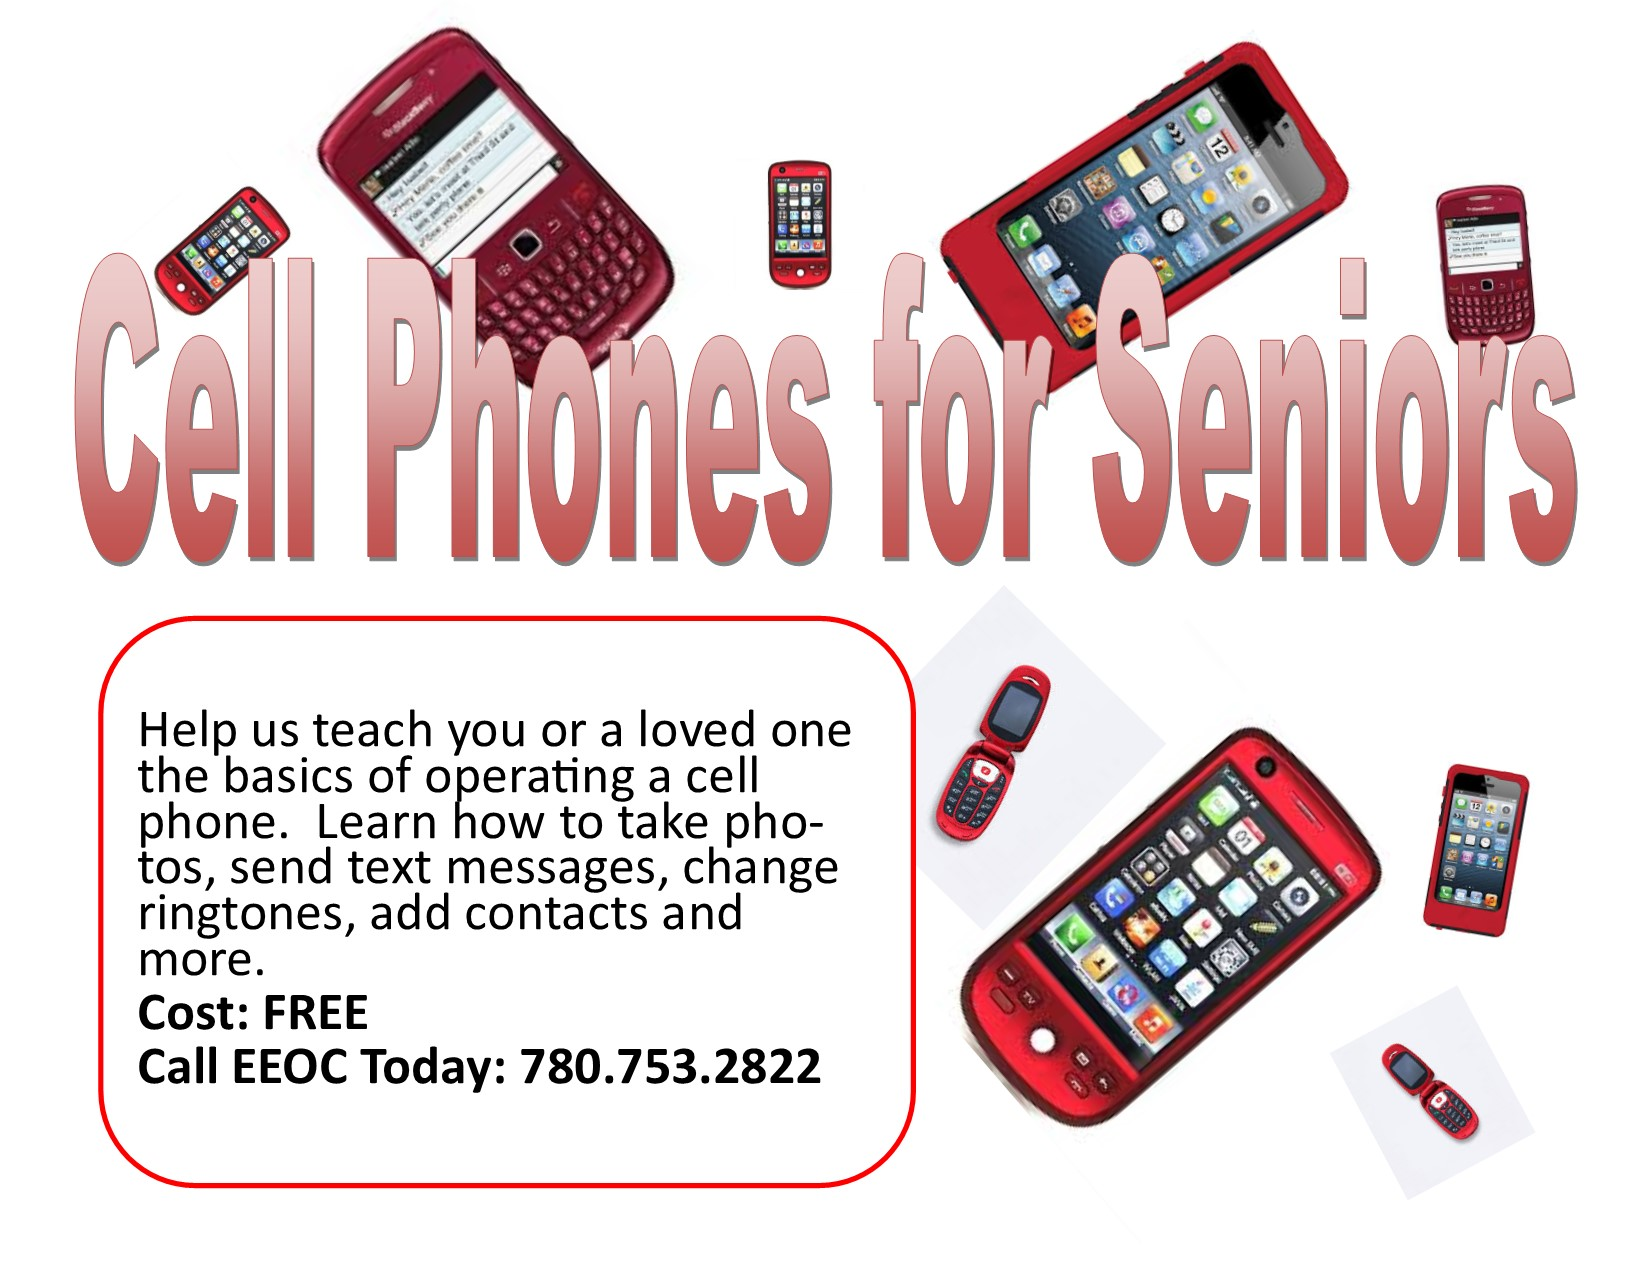 provost eeoc cell phones for seniors